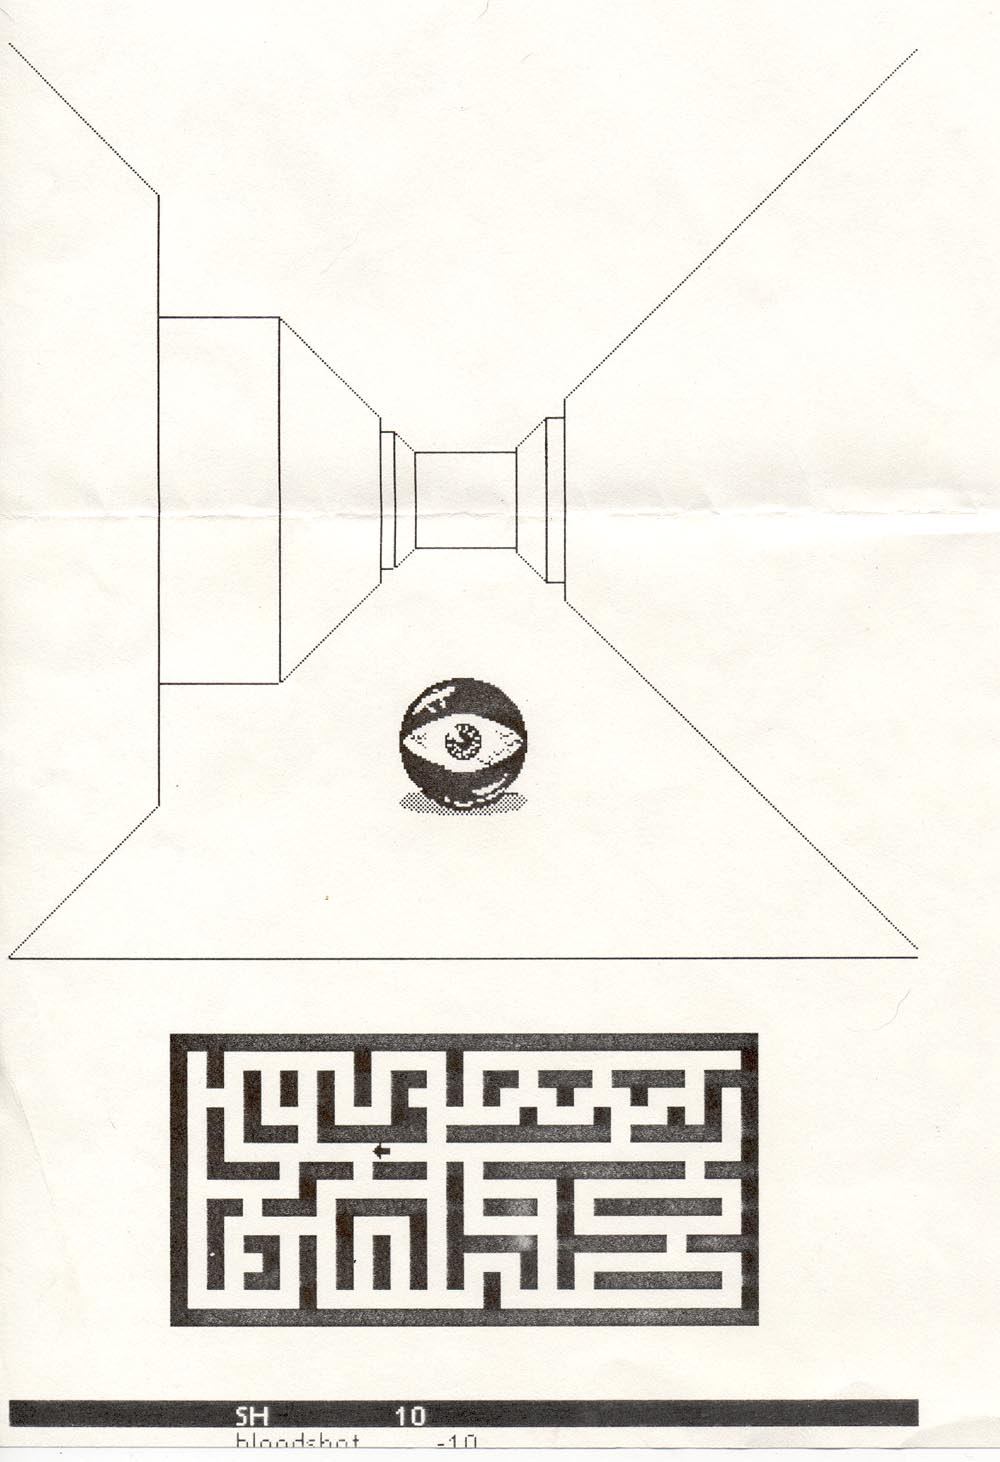 a large demonic eyeball sits in a hallway rendered with one-point perspective. The bottom half of the page has a black and white plan-view of a maze with a small arrow in a hallway indicating the position of the player.